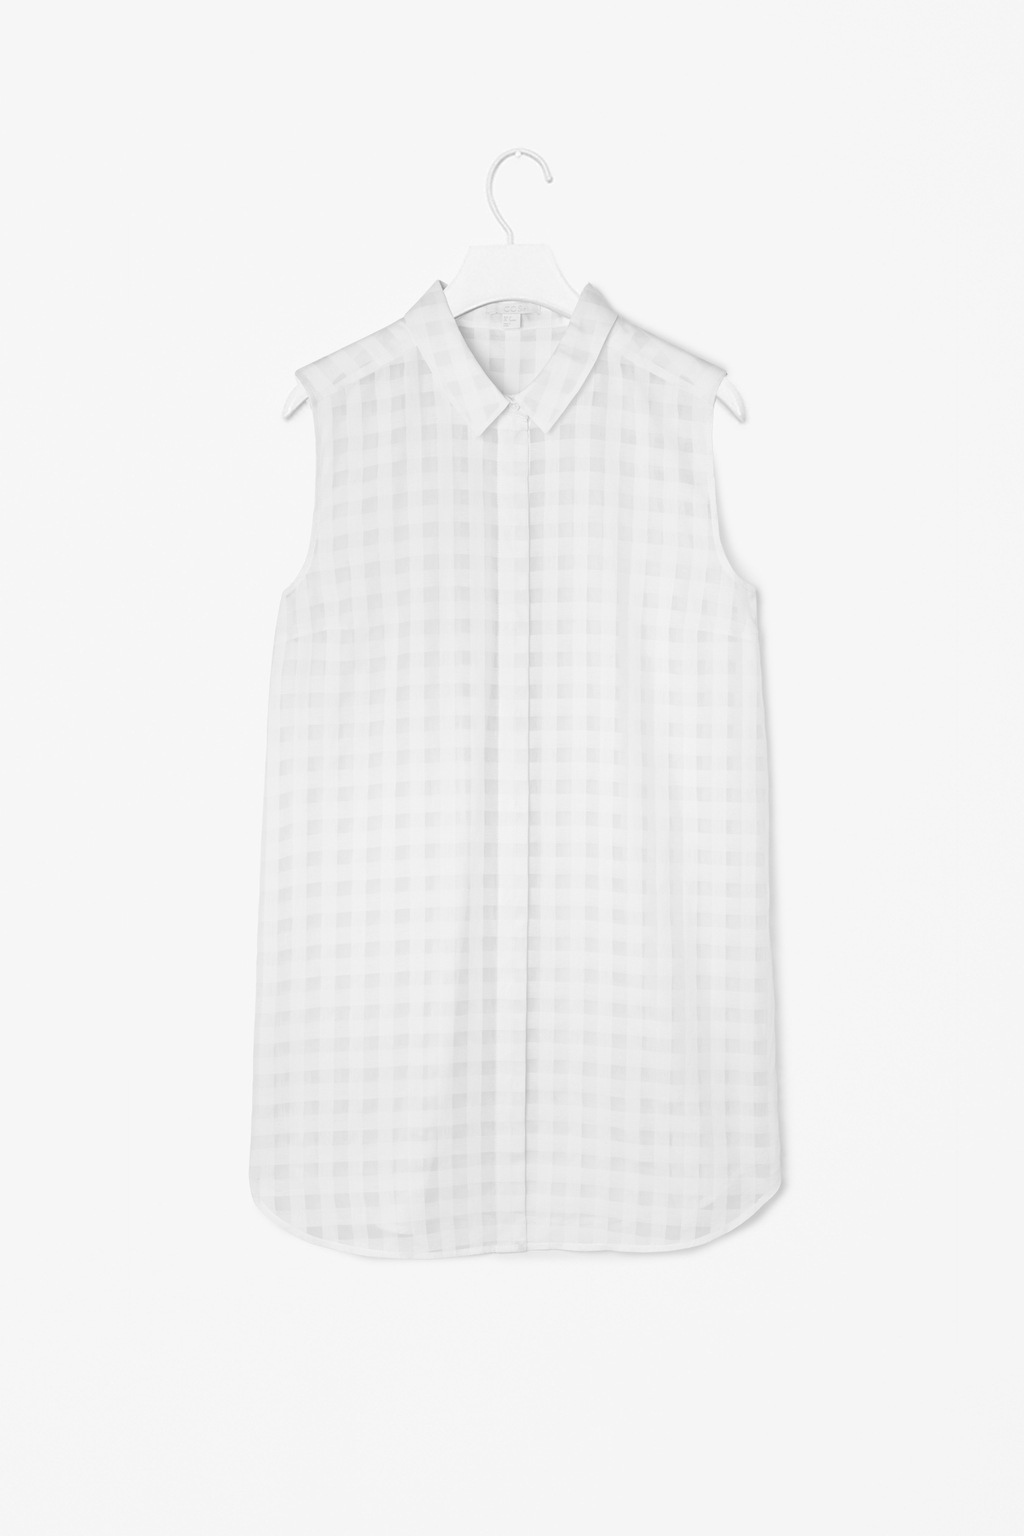 Sheer Checked Shirt - neckline: shirt collar/peter pan/zip with opening; sleeve style: sleeveless; pattern: checked/gingham; length: below the bottom; style: shirt; predominant colour: ivory/cream; secondary colour: light grey; occasions: casual, holiday, creative work; fibres: cotton - mix; fit: straight cut; sleeve length: sleeveless; pattern type: fabric; pattern size: light/subtle; texture group: other - light to midweight; season: s/s 2014